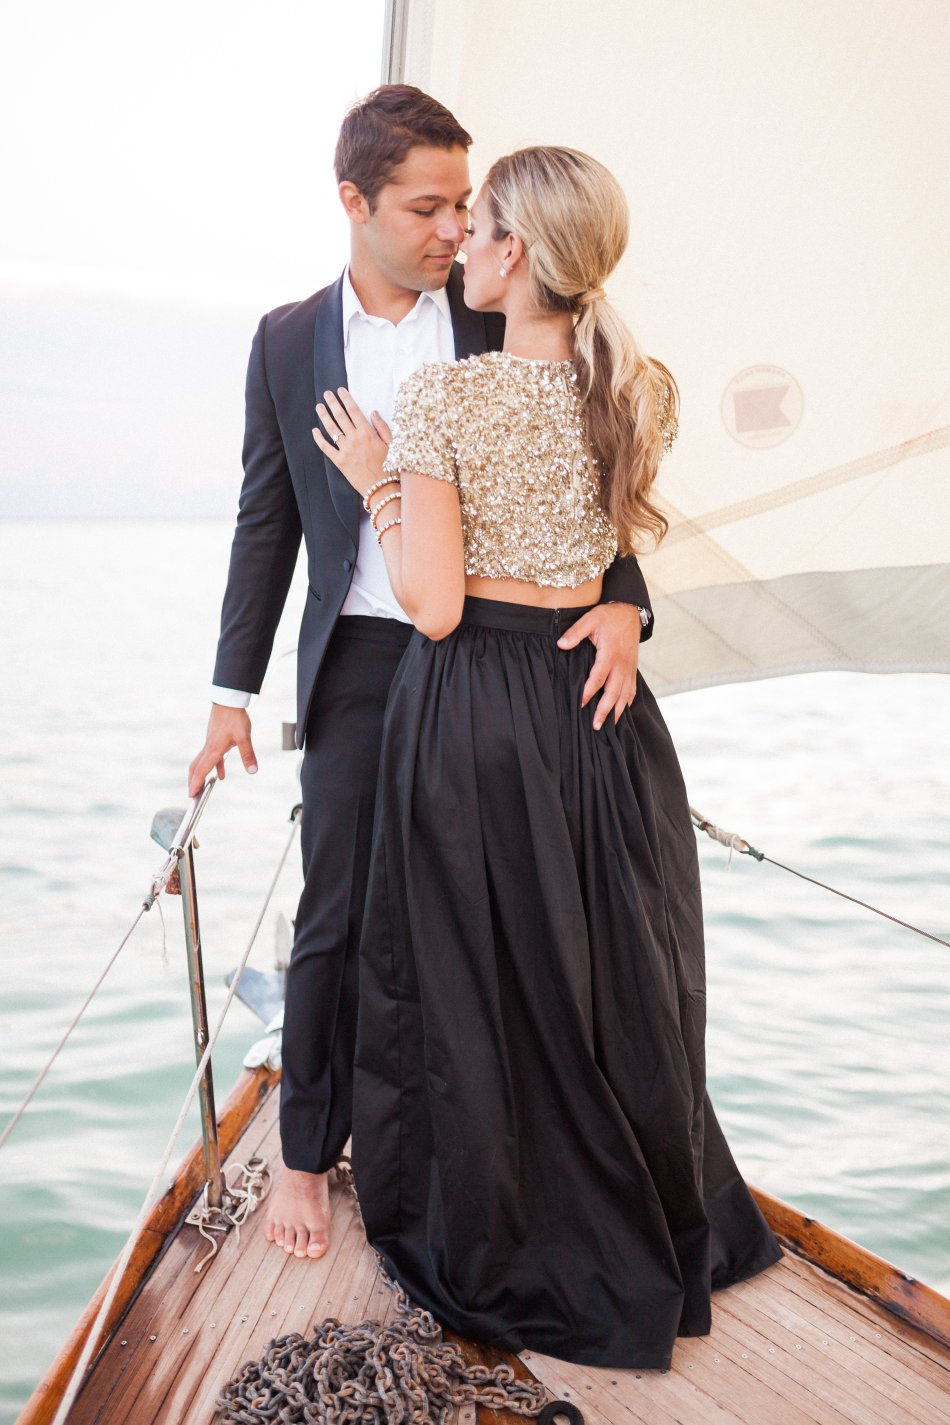 naples-luxury-sailing-engagement-photography-nautical-sailboat-engagement_1051.jpg